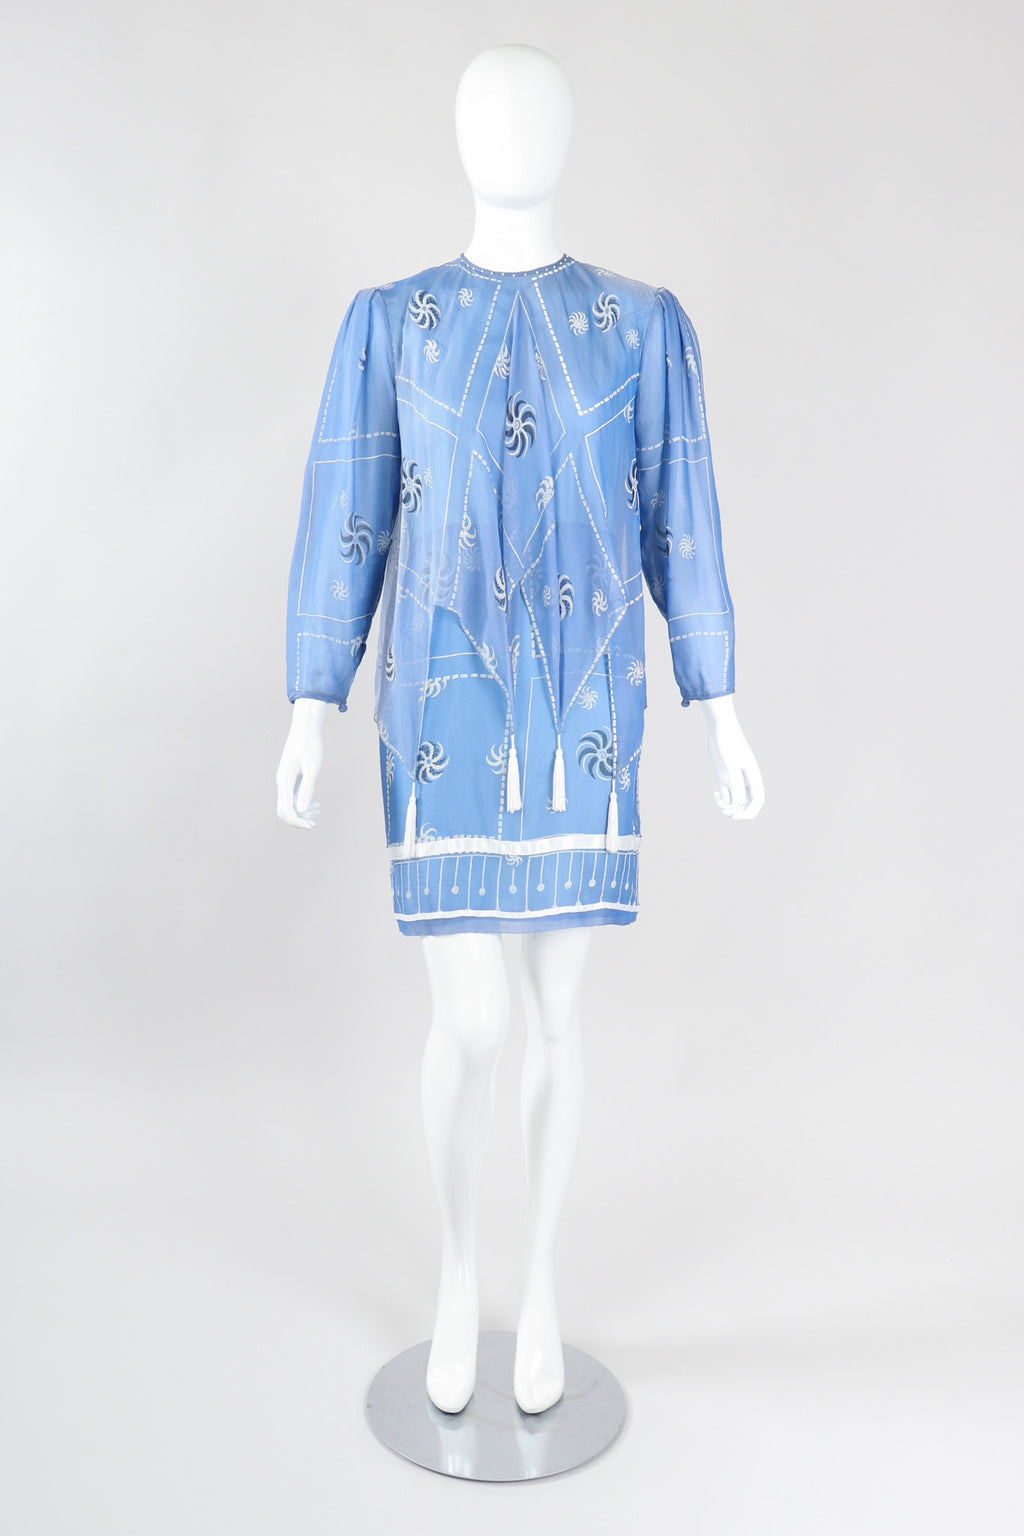 Recess Los Angeles Vintage Rare Zandra Rhodes Sky Blue Pinwheel Painted Chiffon Tassel Dress